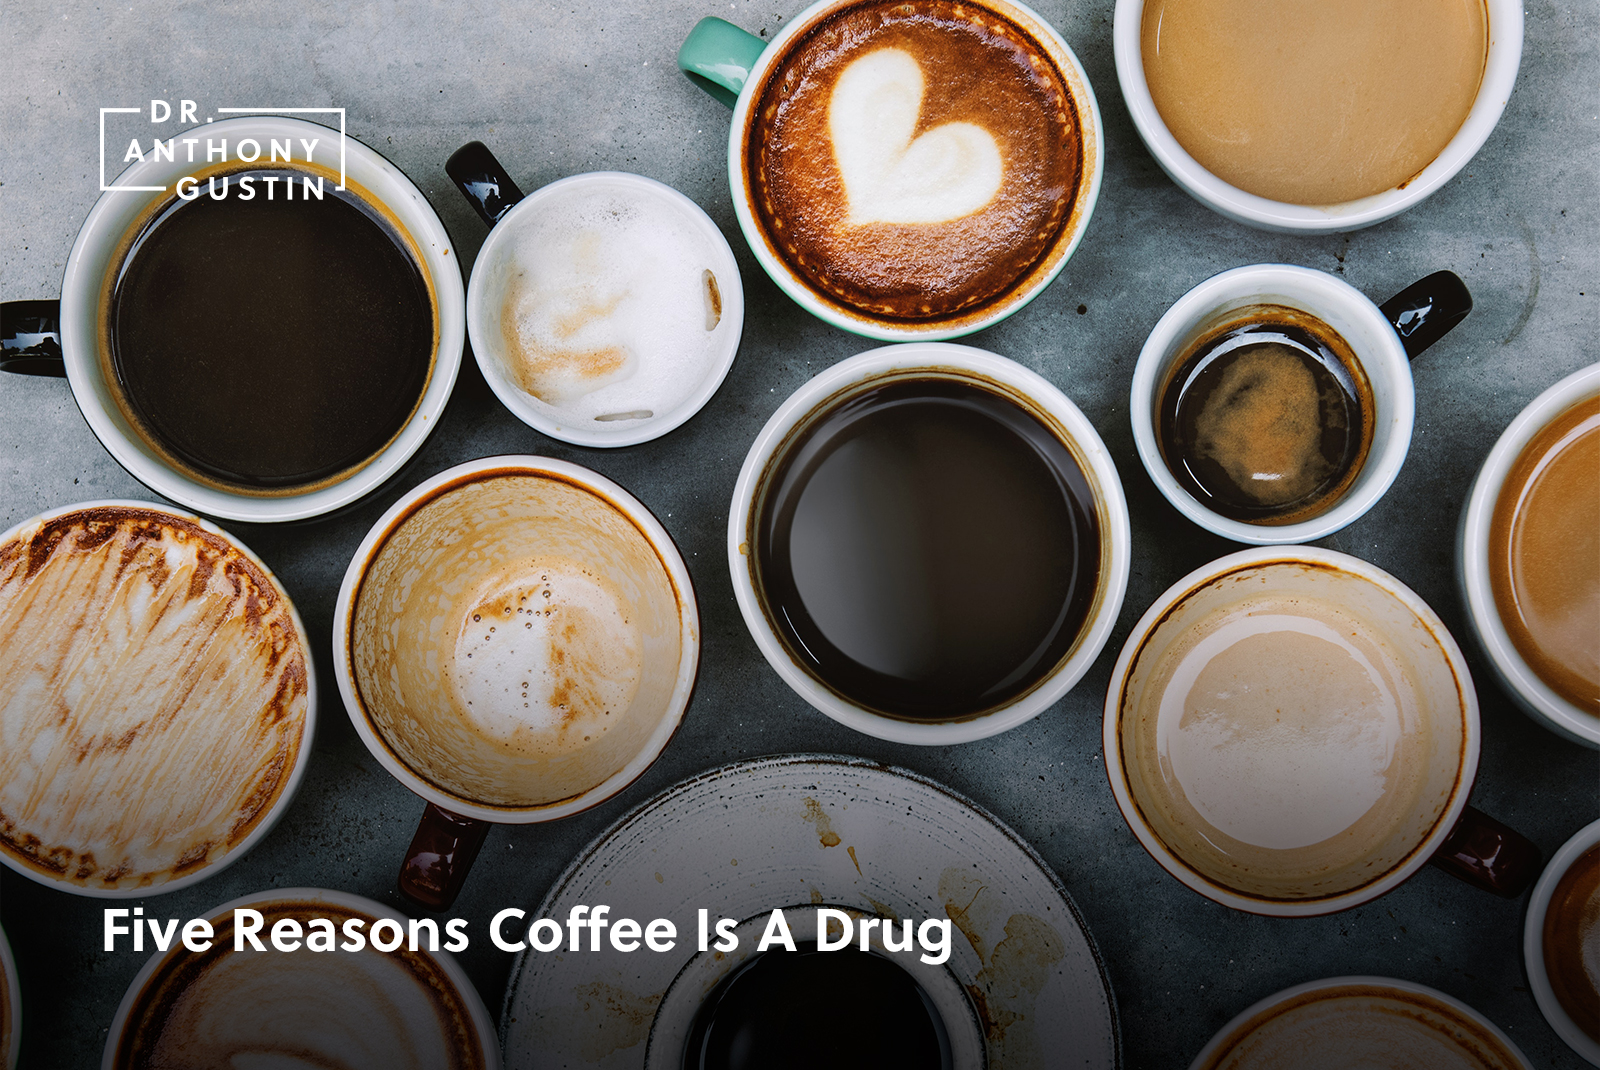 Five Reasons Coffee Is A Drug